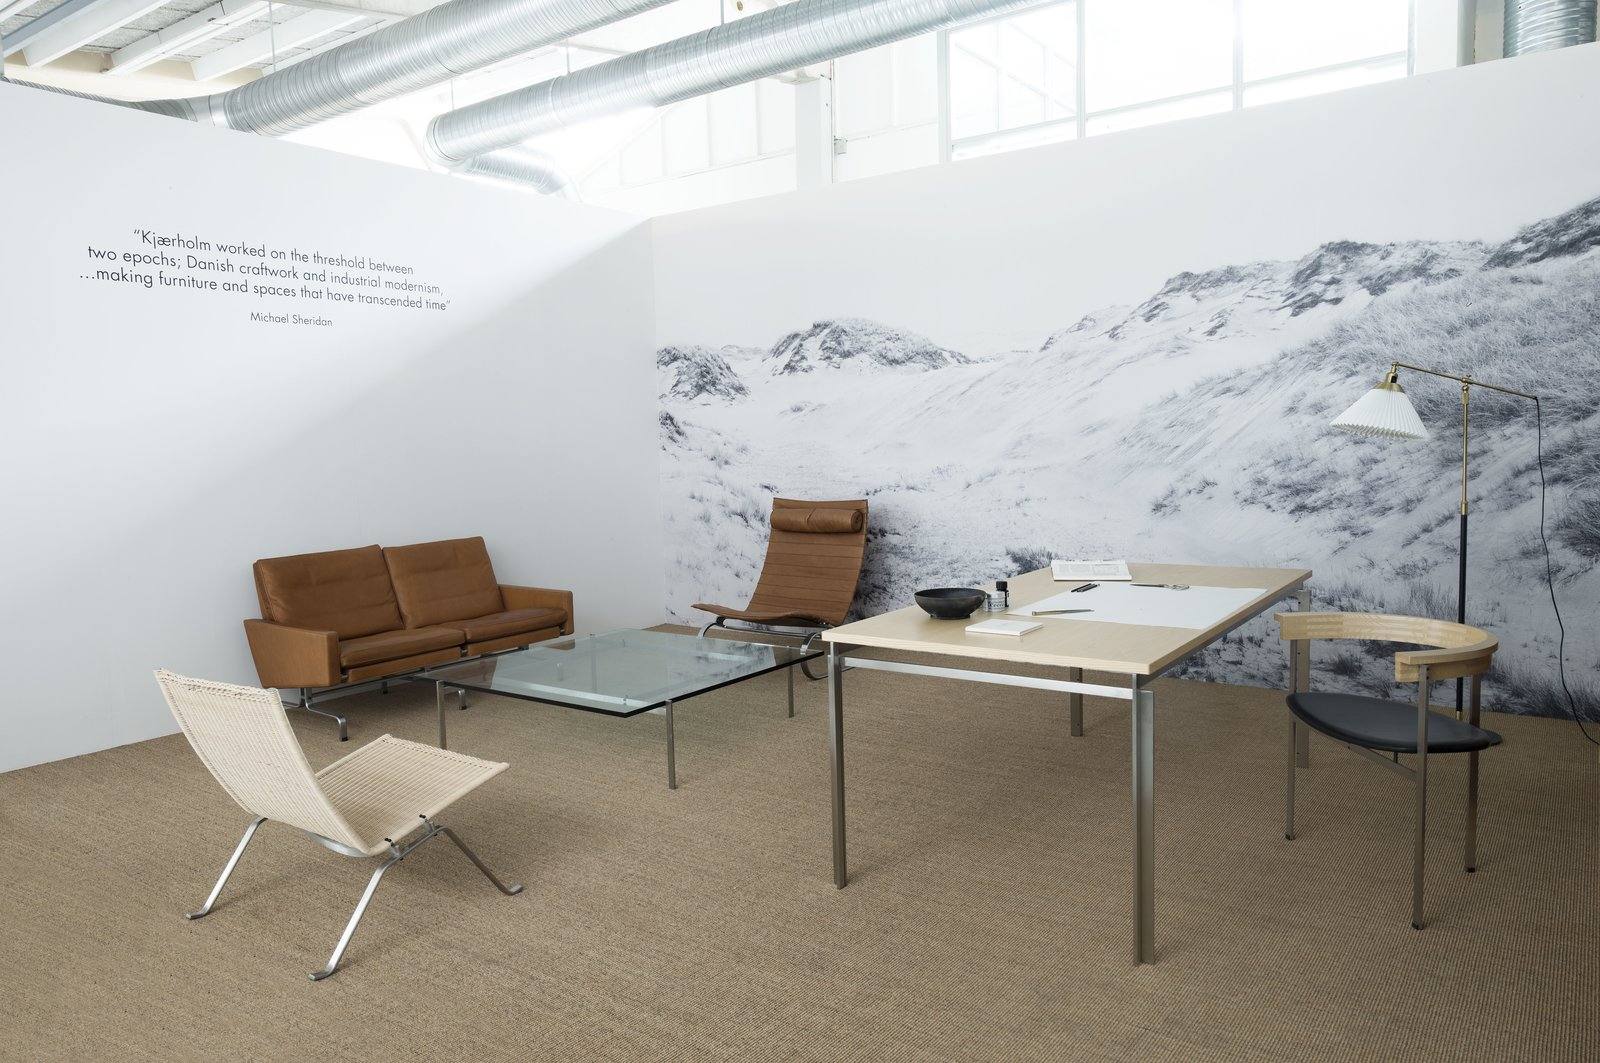 Although steel is prevalent in many of Kjærholm's design, he was inspired by nature throughout his life. Natural materials such as wicker and leather were chosen for their ability to age over time. Featured in Fritz Hansen's headquarters in Copenhagen, a section dedicated to the designer includes the PK11 armchair paired with the PK55 table while the PK20 lounge chair and PK31 sofa surround the coffee table.  Photo 5 of 11 in 10 Things You Didn't Know About Poul Kjærholm